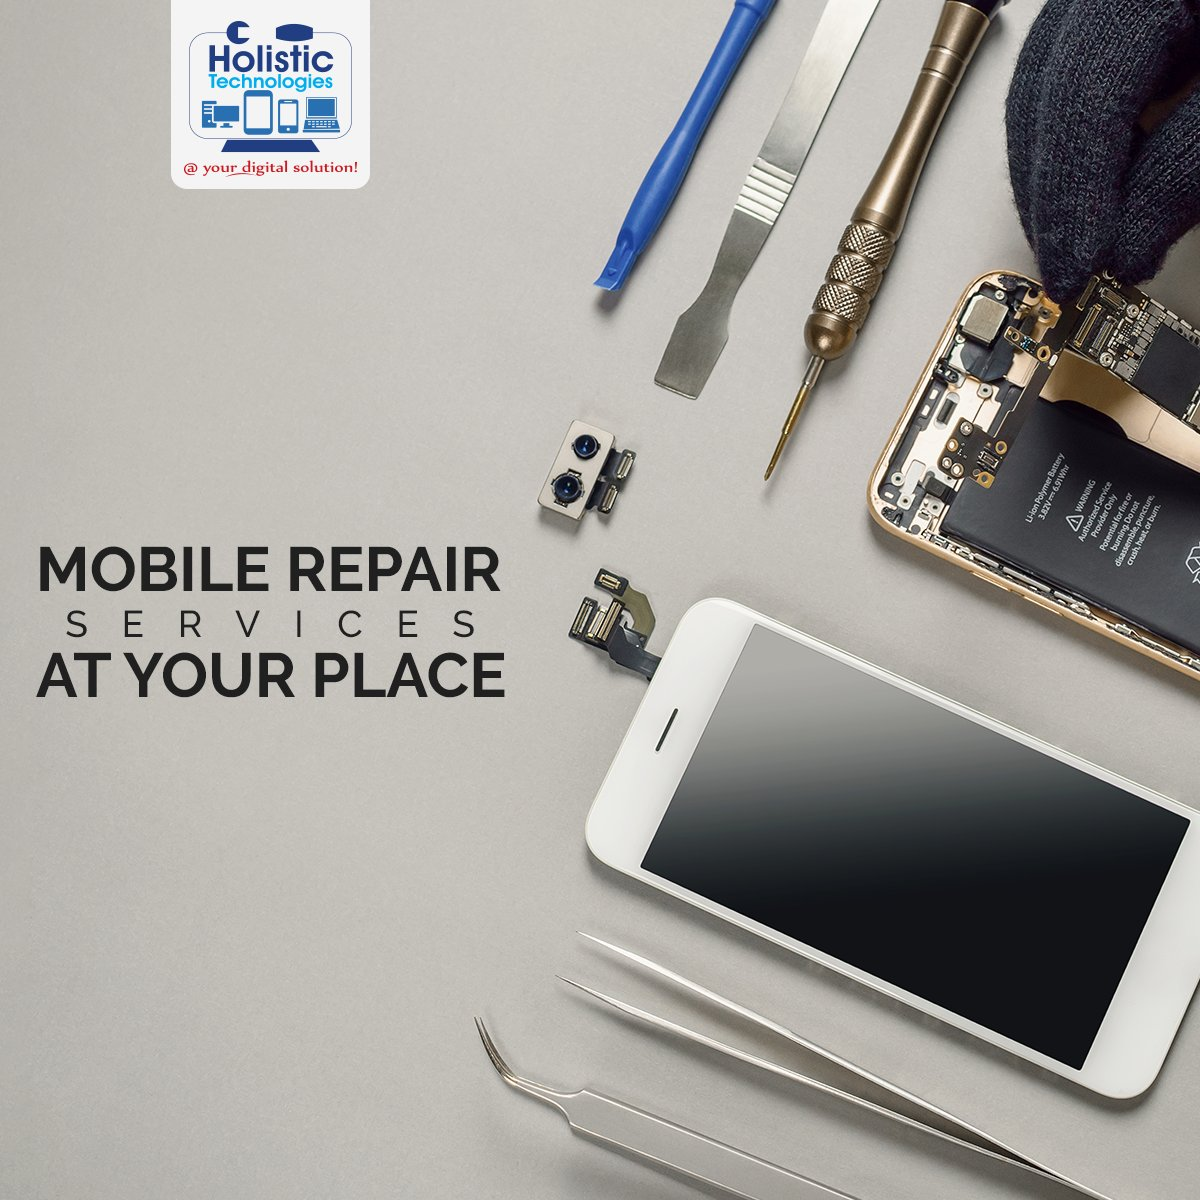 Are you facing any problem with your phone?  Contact us: 0303-0300041 Website: http://www.holistictechnologies.com.pk   #Services #HolisticTeam #Holistictechnologies #mobilerepair #phone #repair #mobilefix #phonecrack #phonefix #tabletrepair #cellphonerepairpic.twitter.com/tWLIh8YeCp